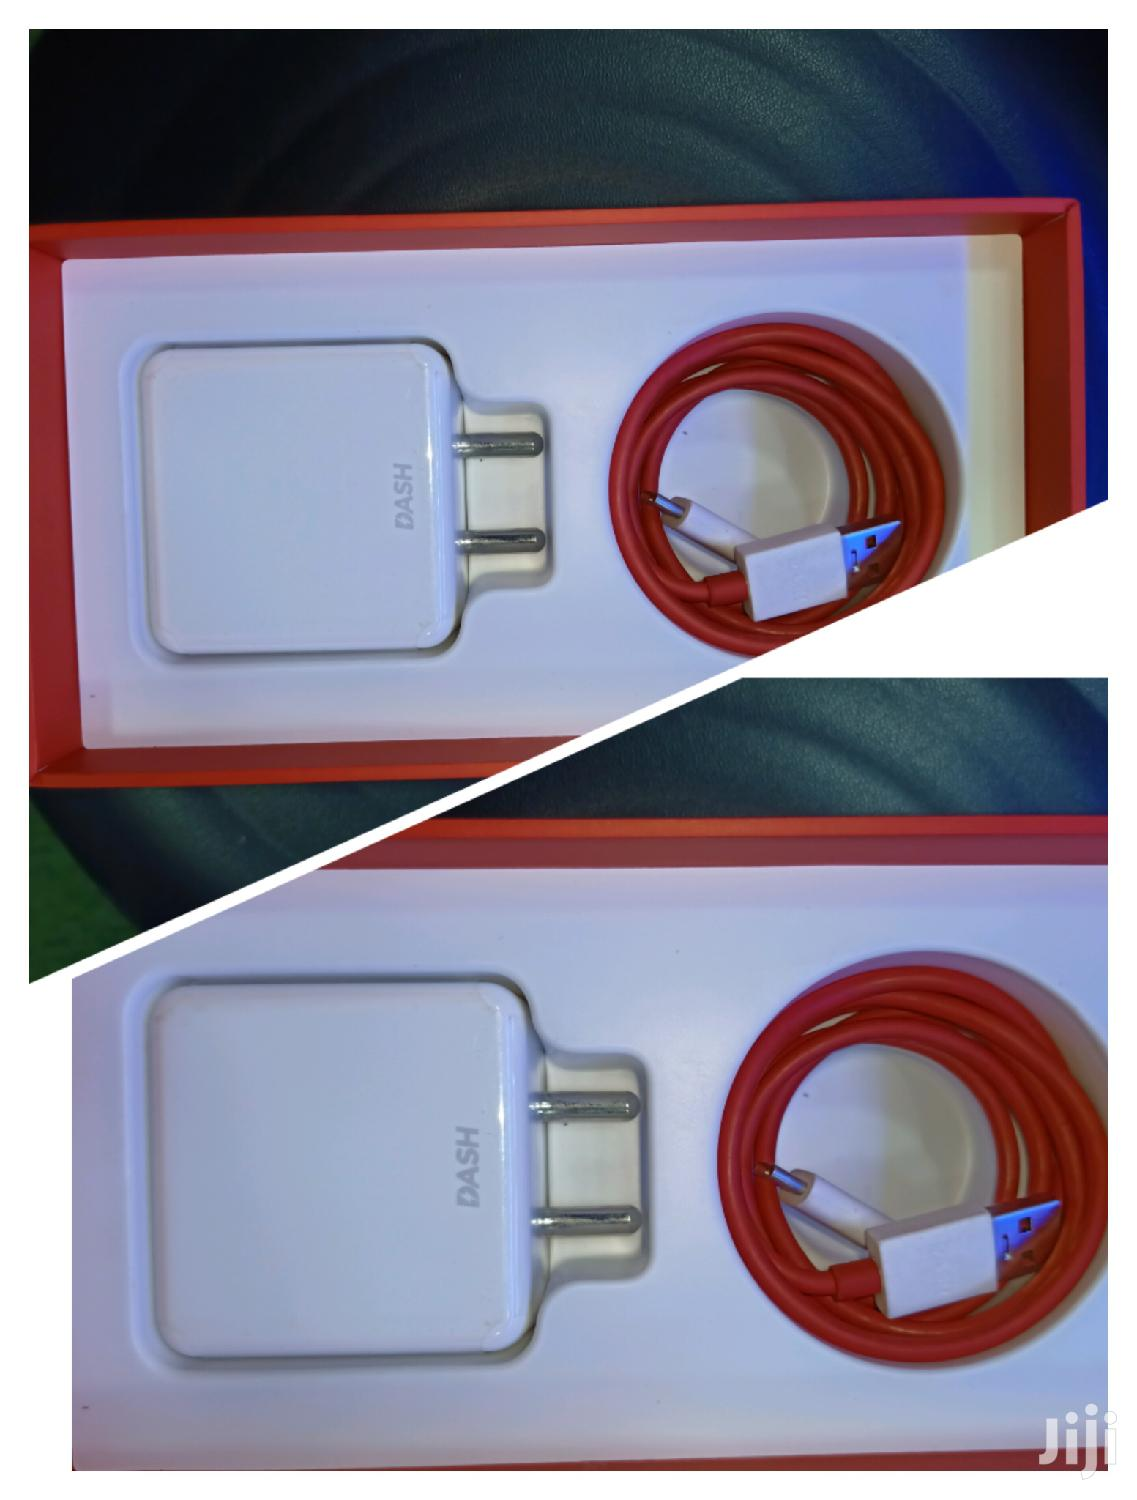 Oneplus Dash Charger | Accessories for Mobile Phones & Tablets for sale in Kampala, Central Region, Uganda